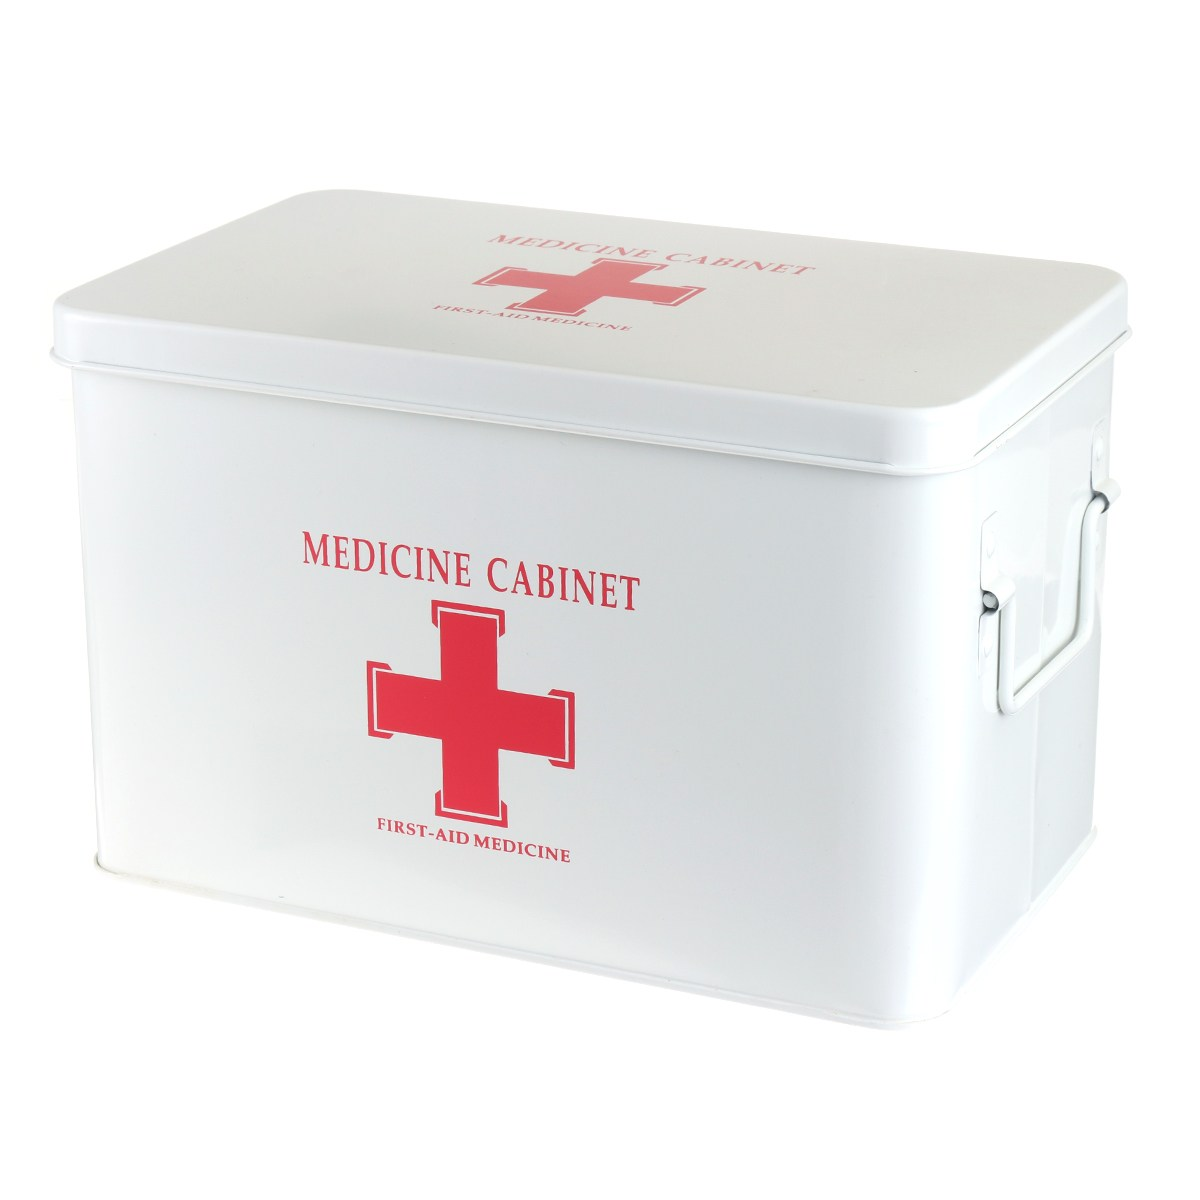 NEW Safurance Metal Medicine Cabinet Multi layered Family Box First Aid Storage Box Storage Medical Gathering Emergency Kits